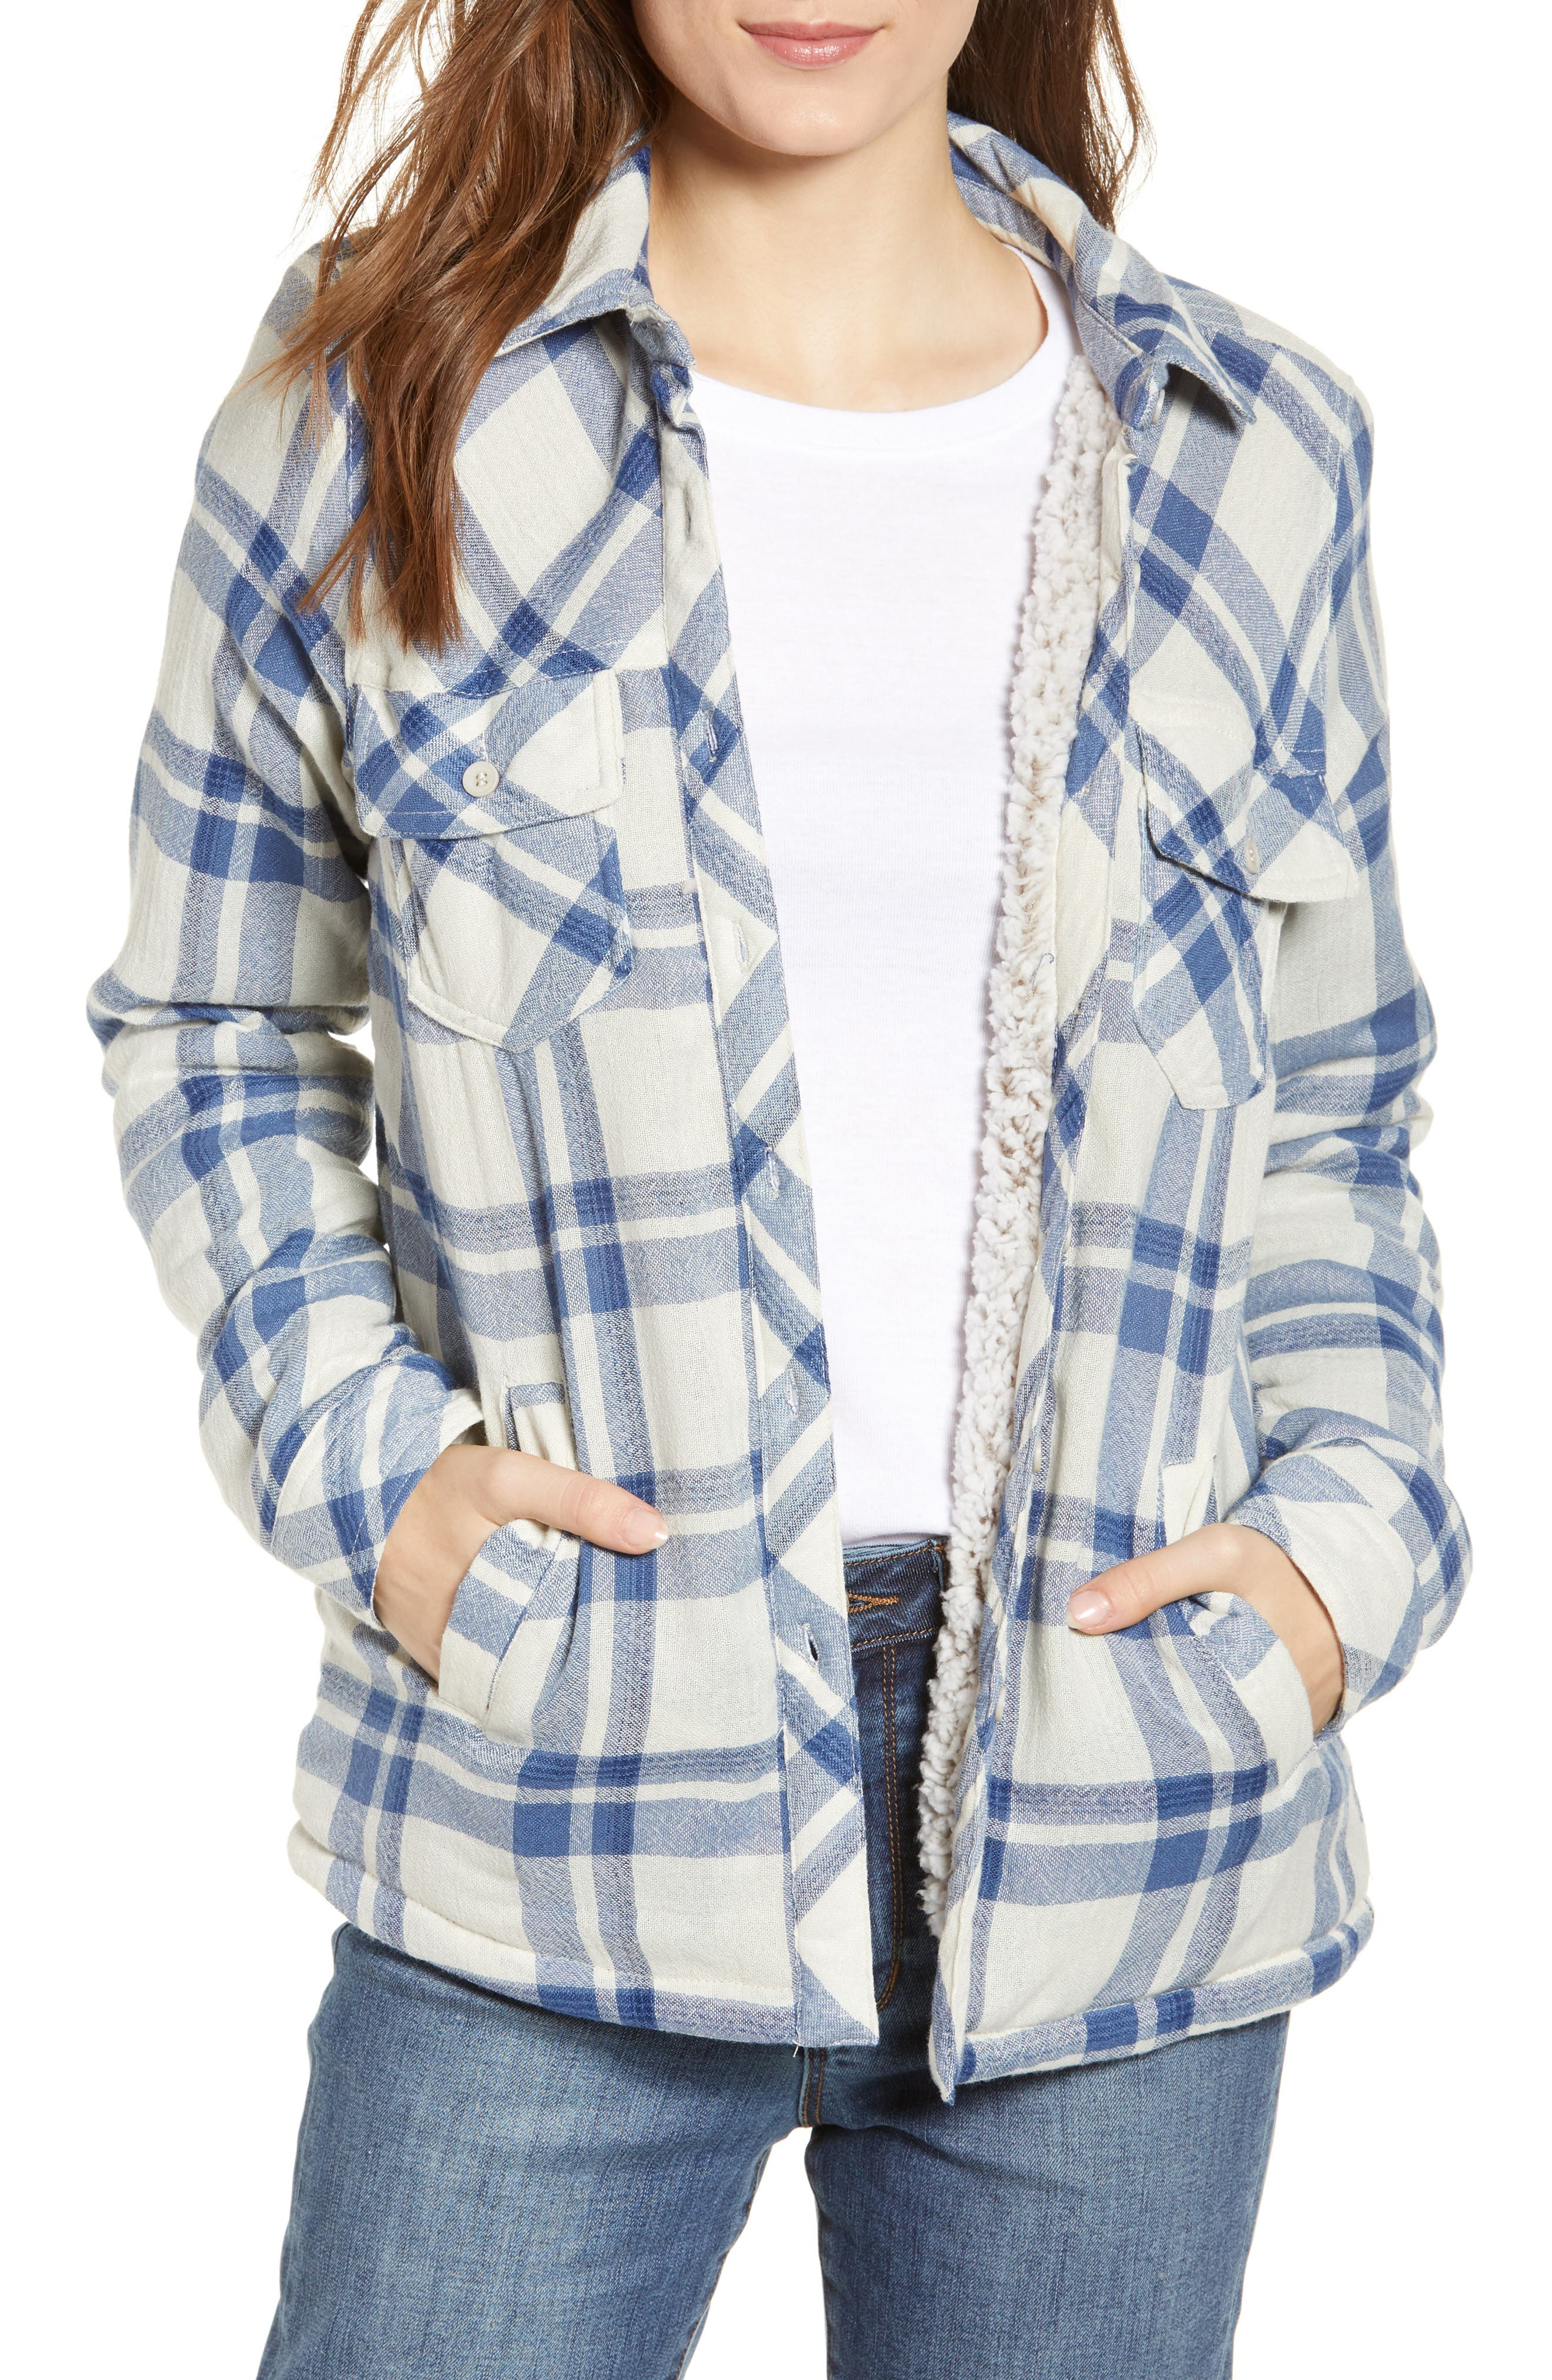 Image of THREAD AND SUPPLY Newark Faux Shearling Lined Plaid Shirt Jacket